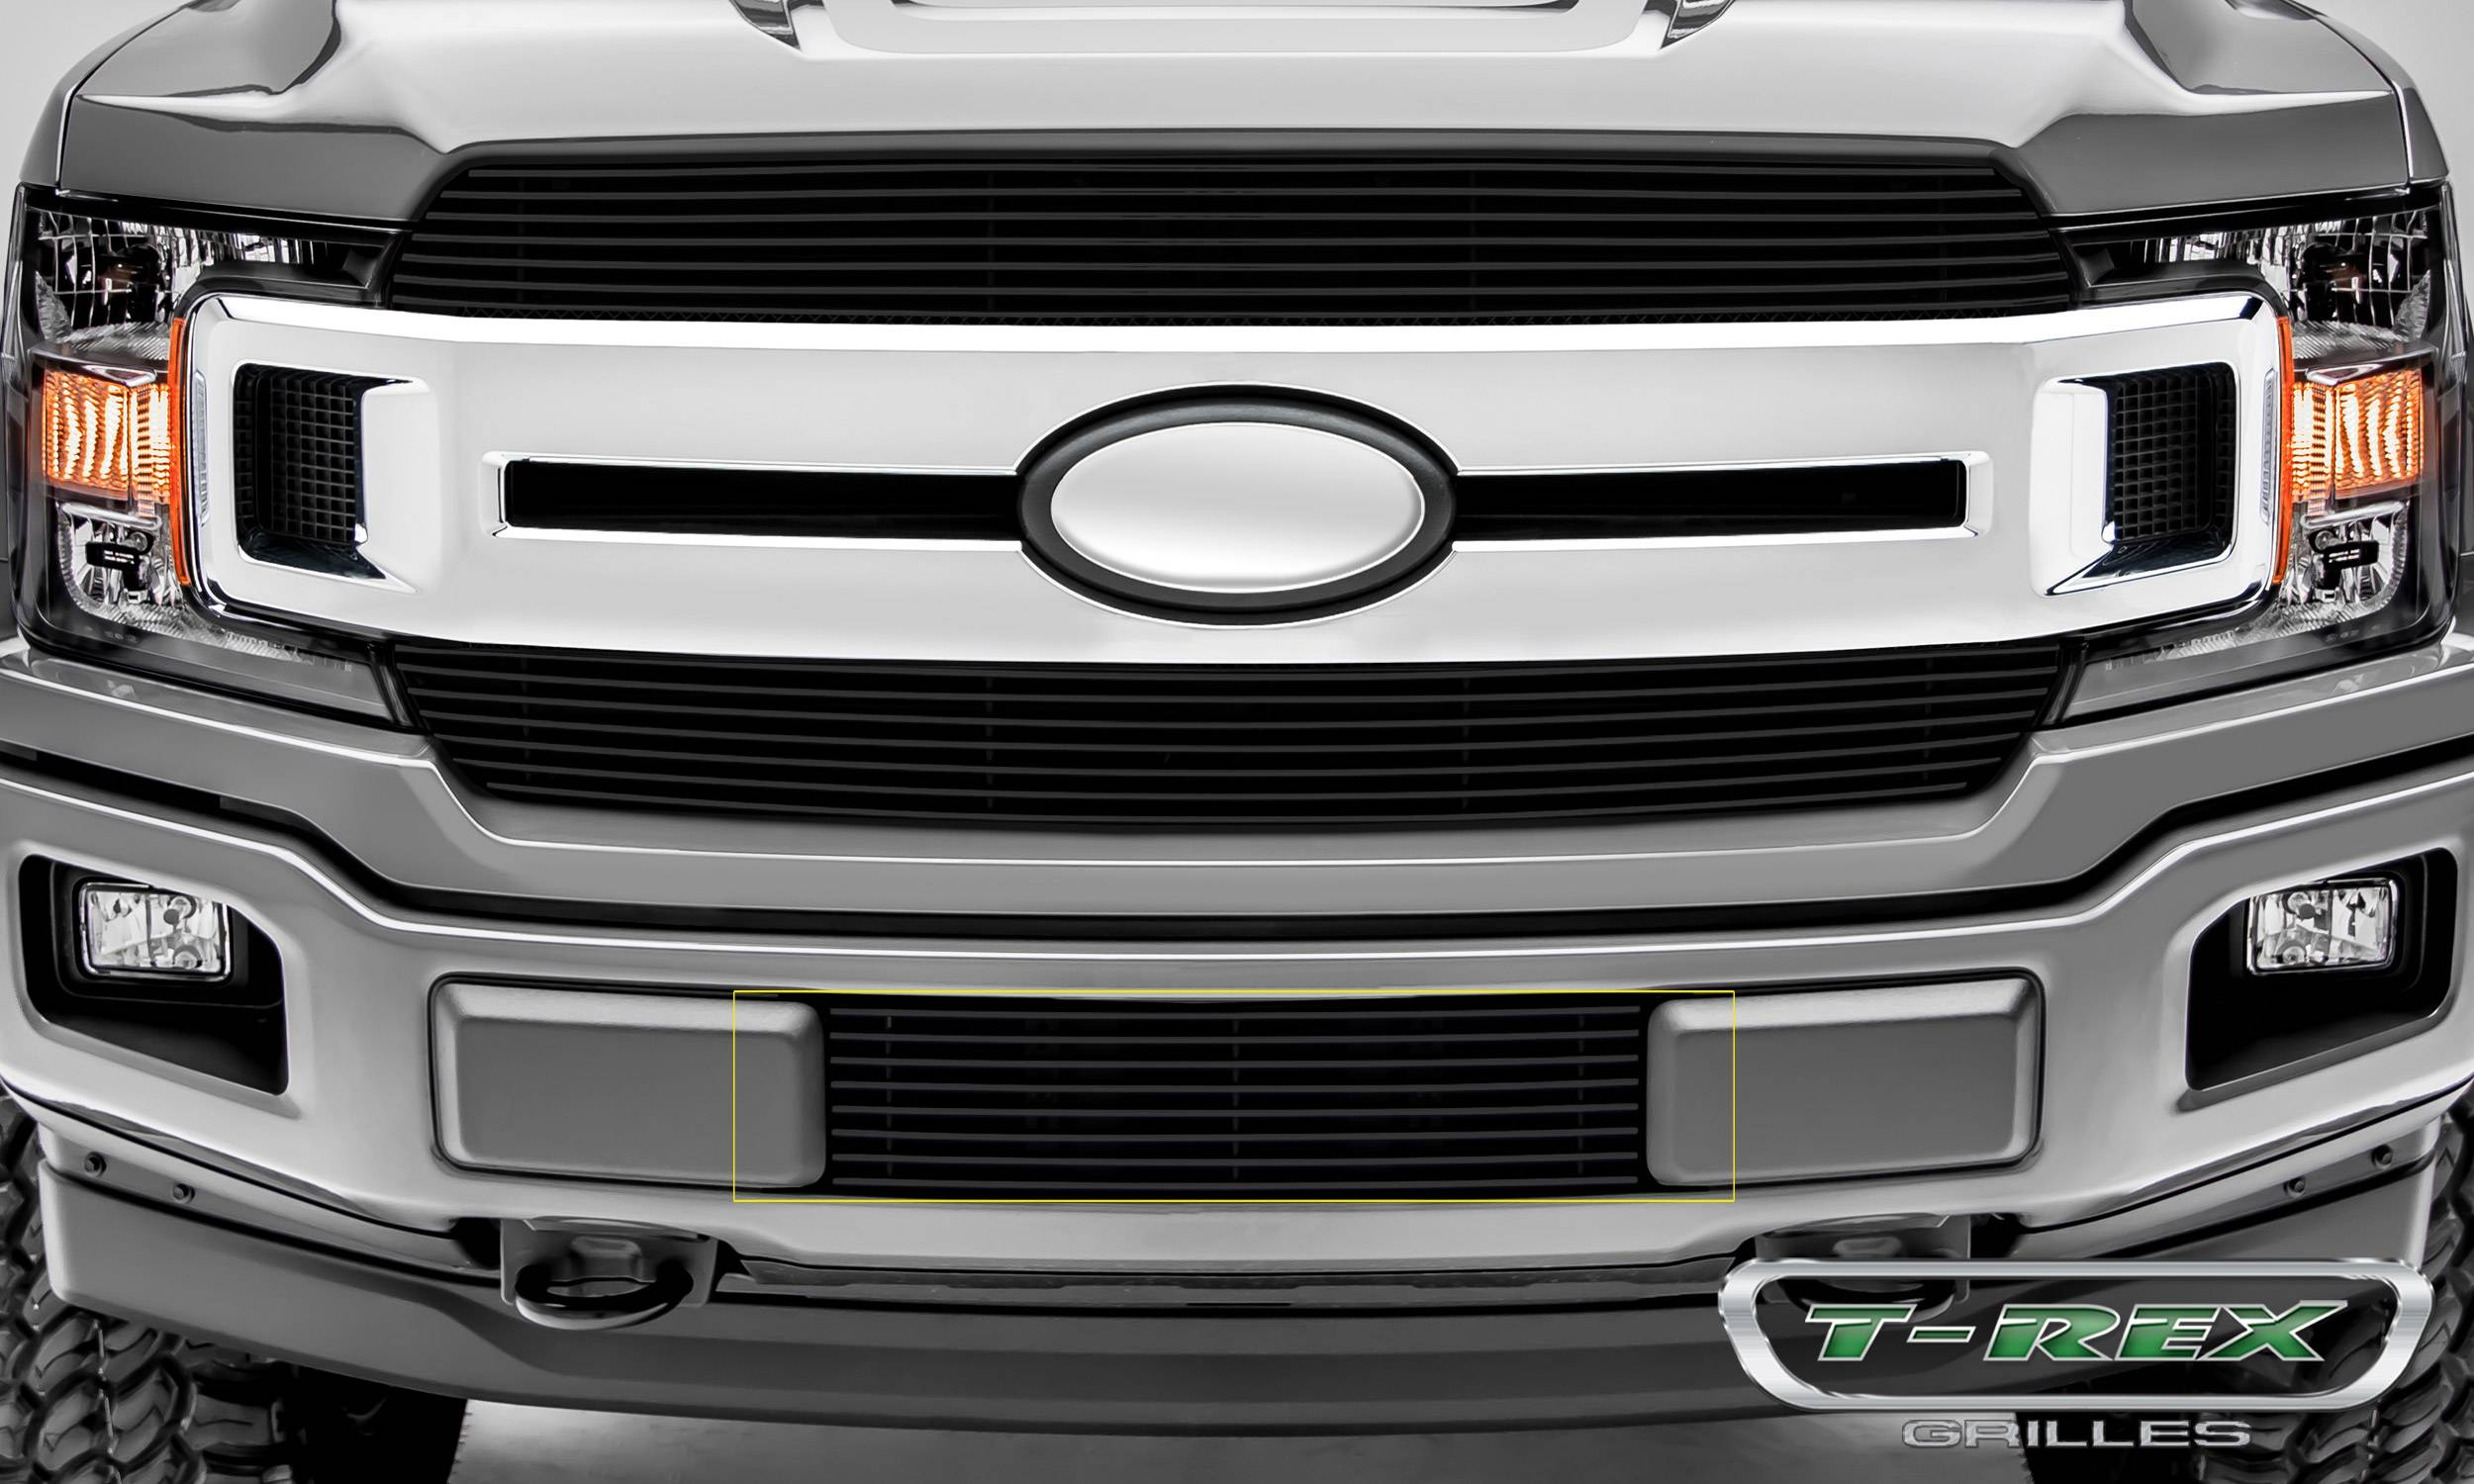 T-REX Grilles - T-REX Ford F-150 - Billet Series - Bumper Grille Overlay with Black Powdercoat Aluminum Finish - Pt # 25571B